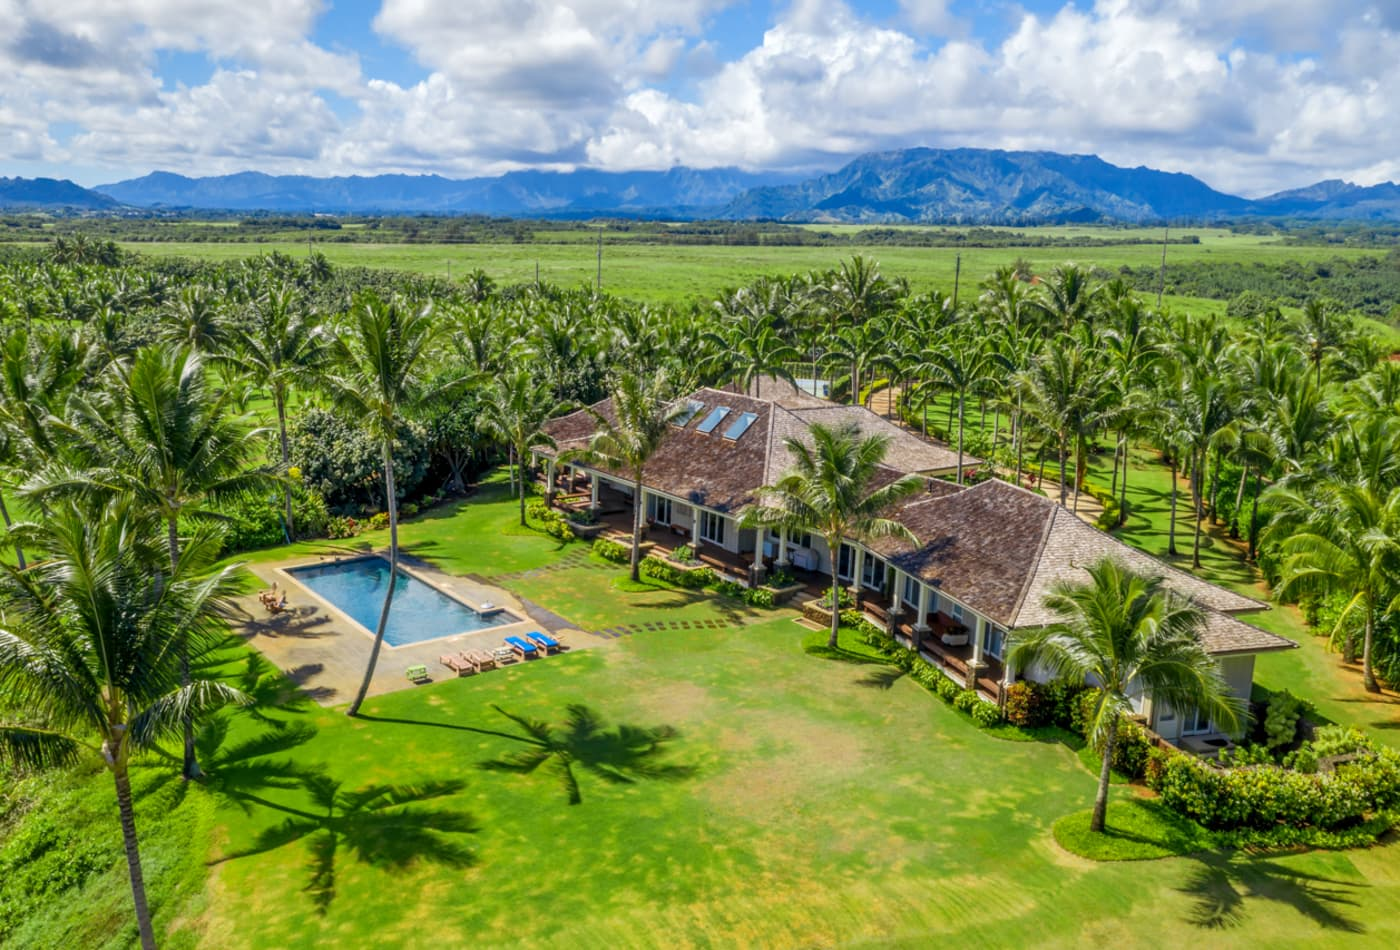 CrossFit founder's Hawaiian beach house on sale for $7 million – take a look inside